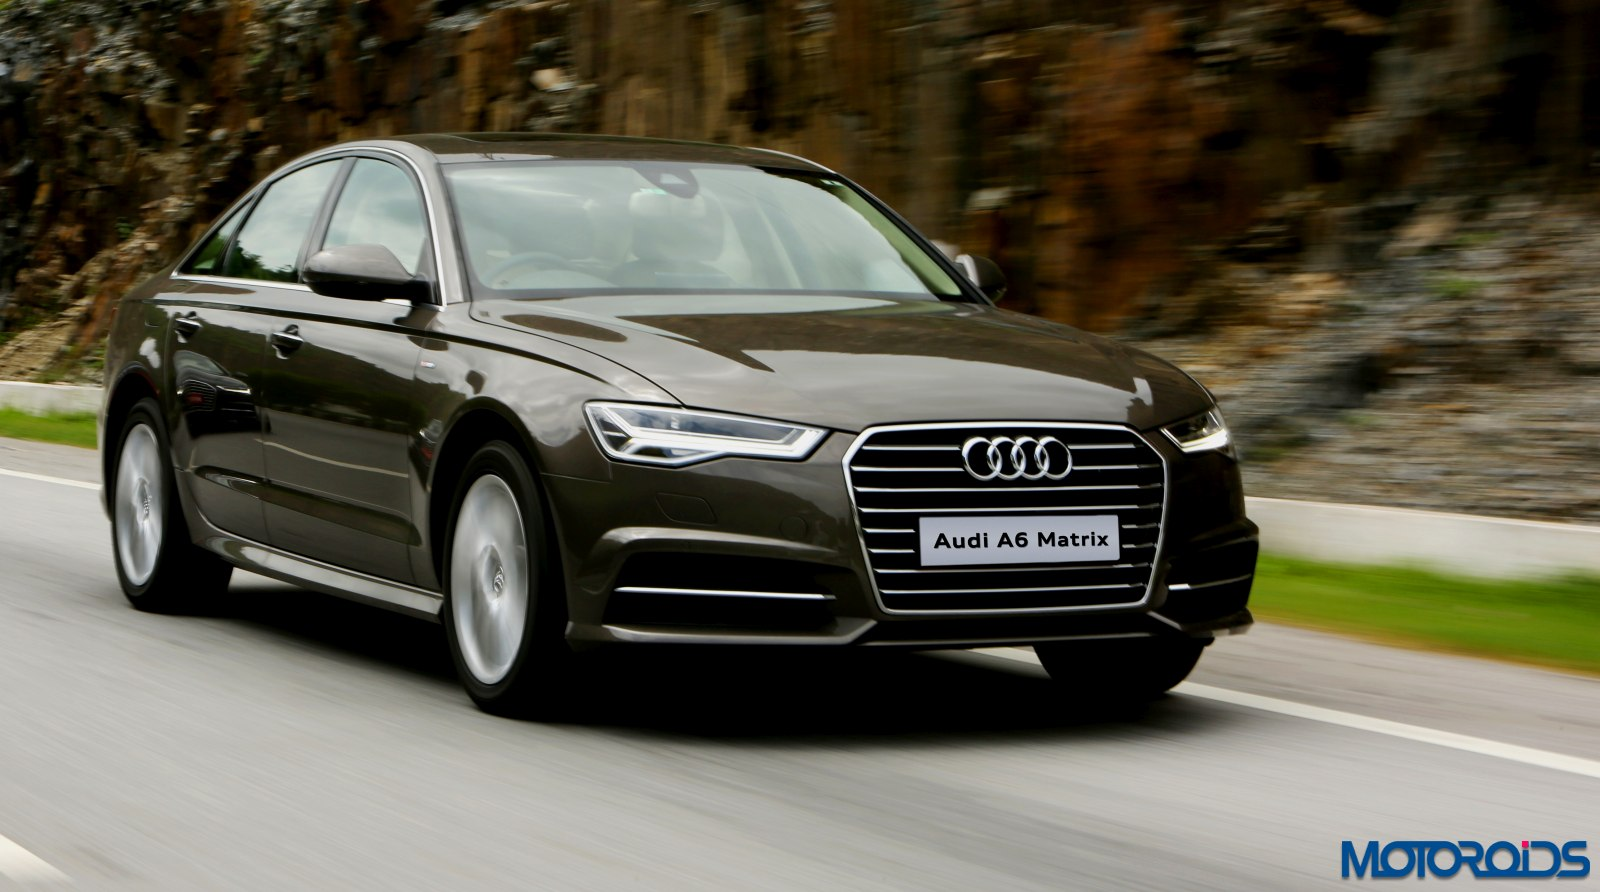 2015 audi a6 matrix facelift india review 5. Black Bedroom Furniture Sets. Home Design Ideas